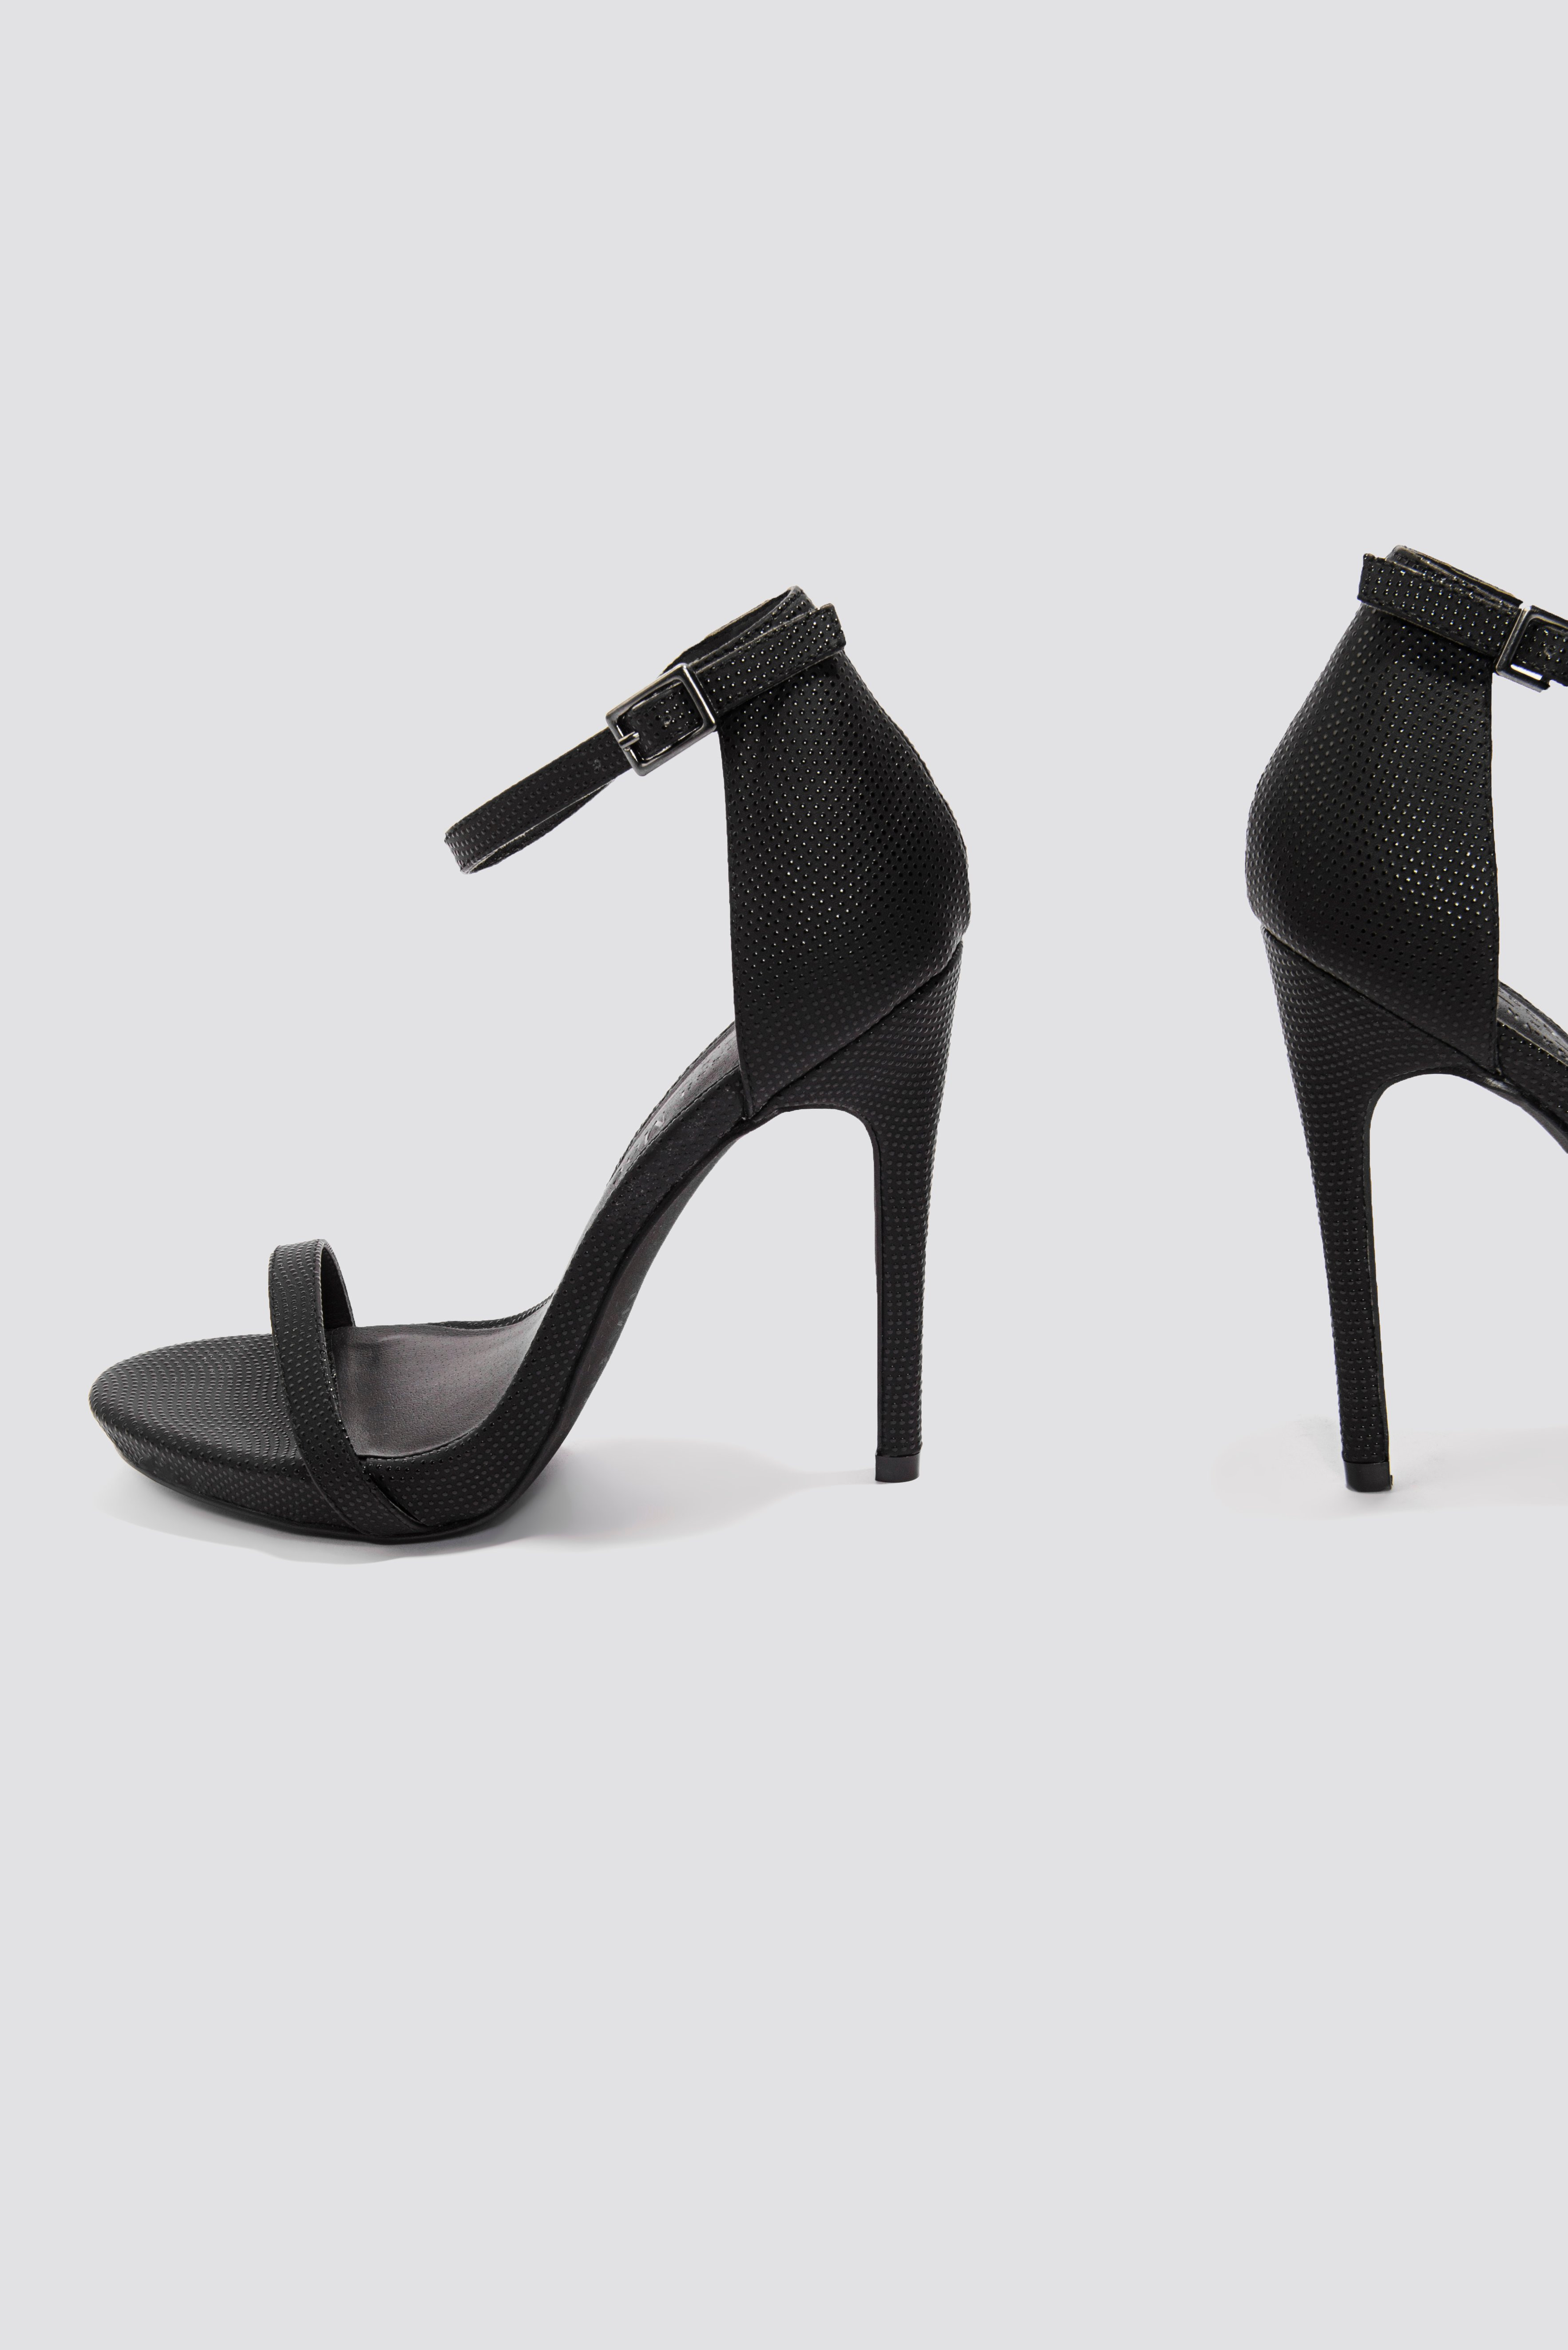 Black The High Heel